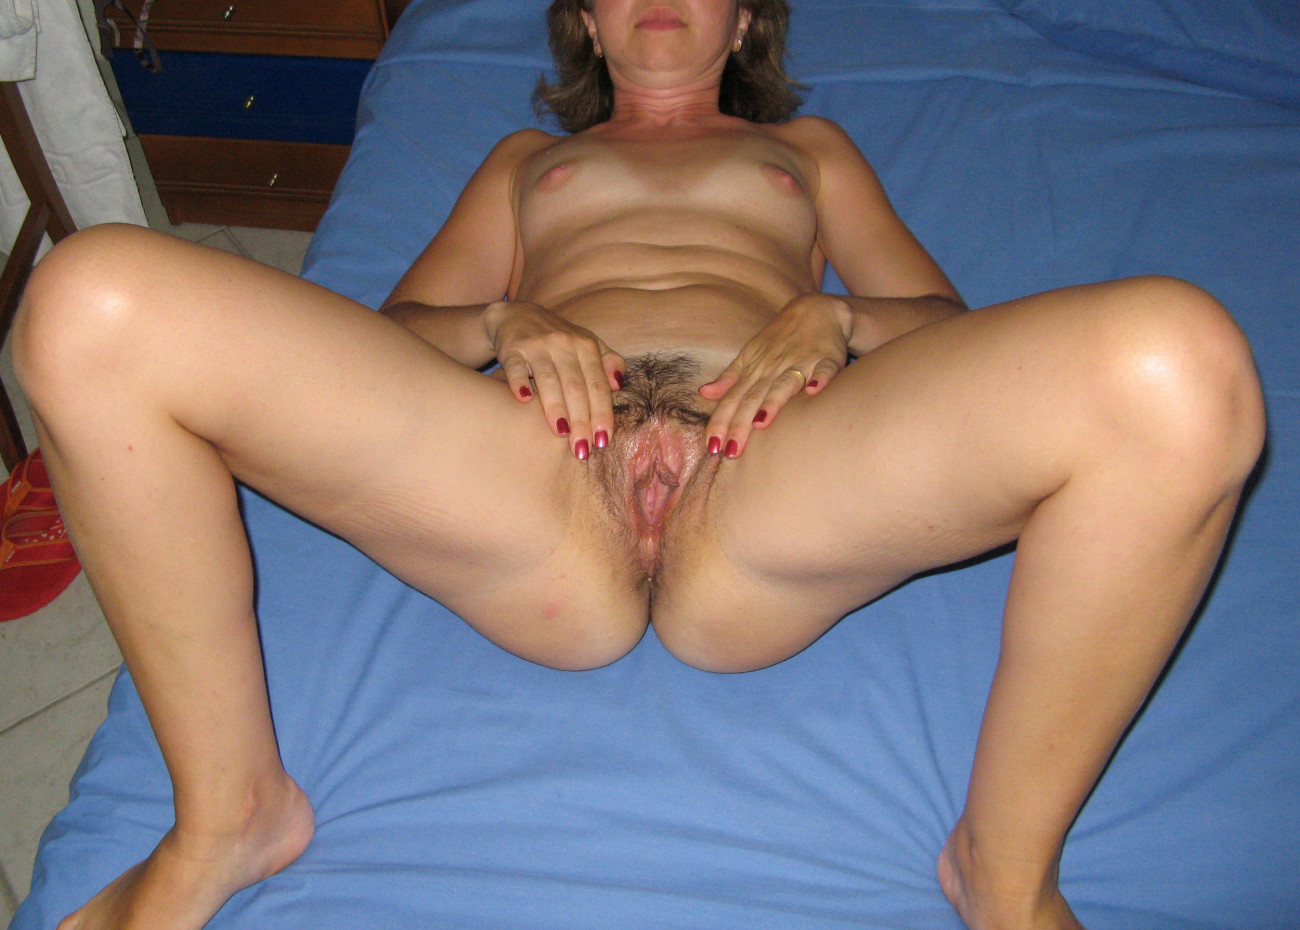 Wife spreading vagina nude